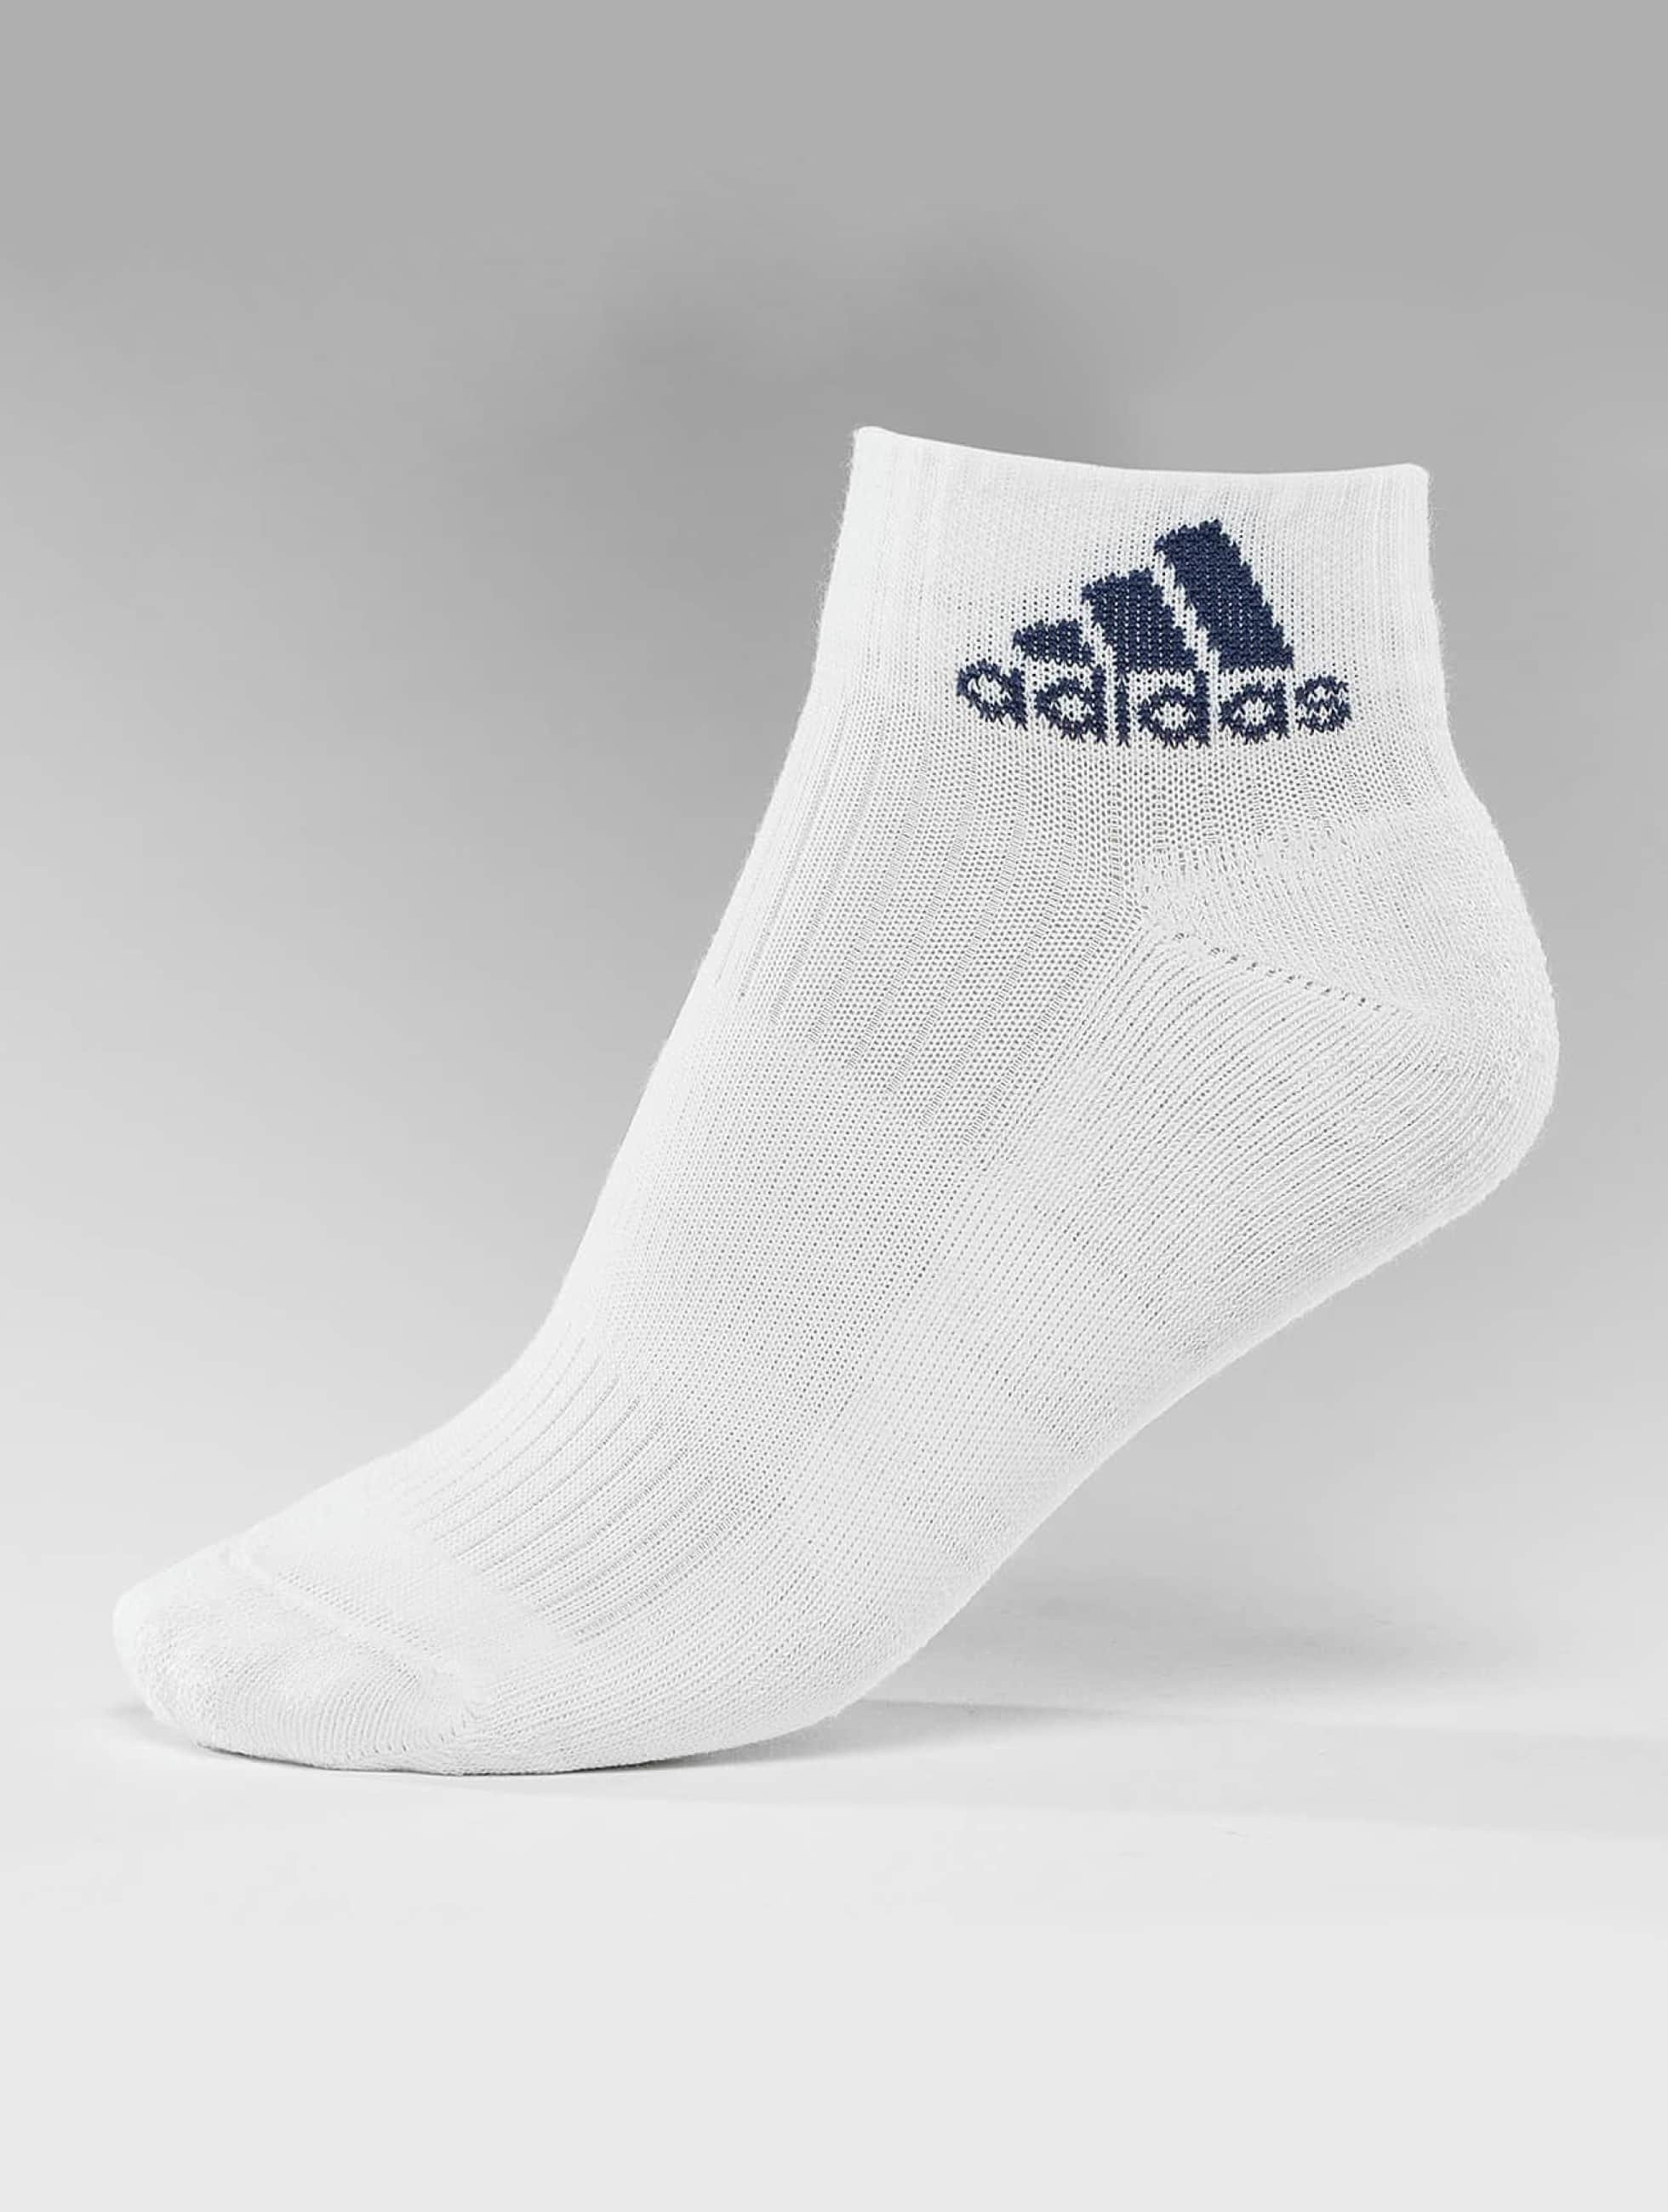 adidas Calcetines 3-Stripes Per An HC 3-Pairs azul